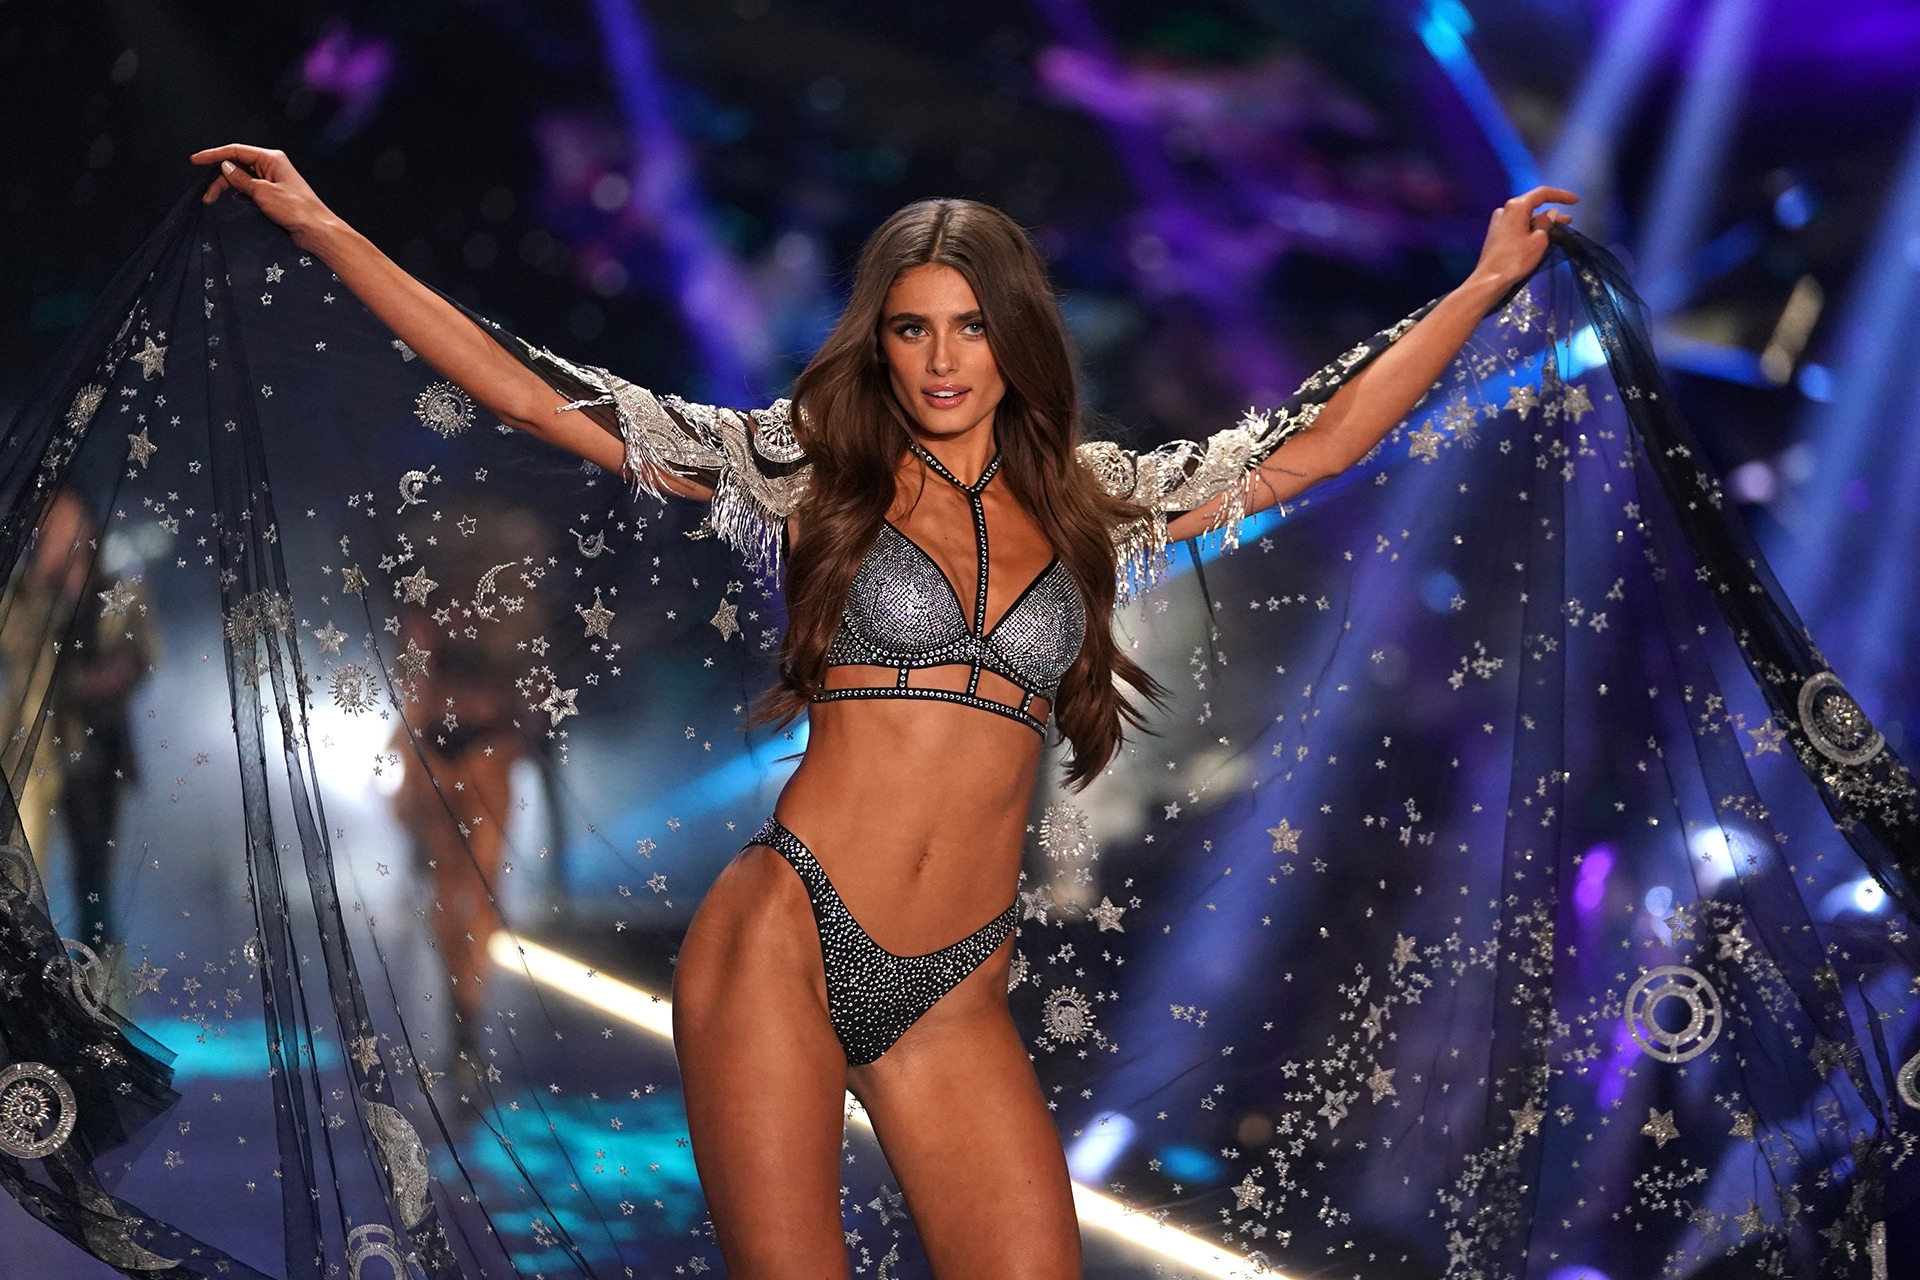 The Internet Is Not Happy With Victoria s Secret s Ed Razek Over His ... a1aeb4991